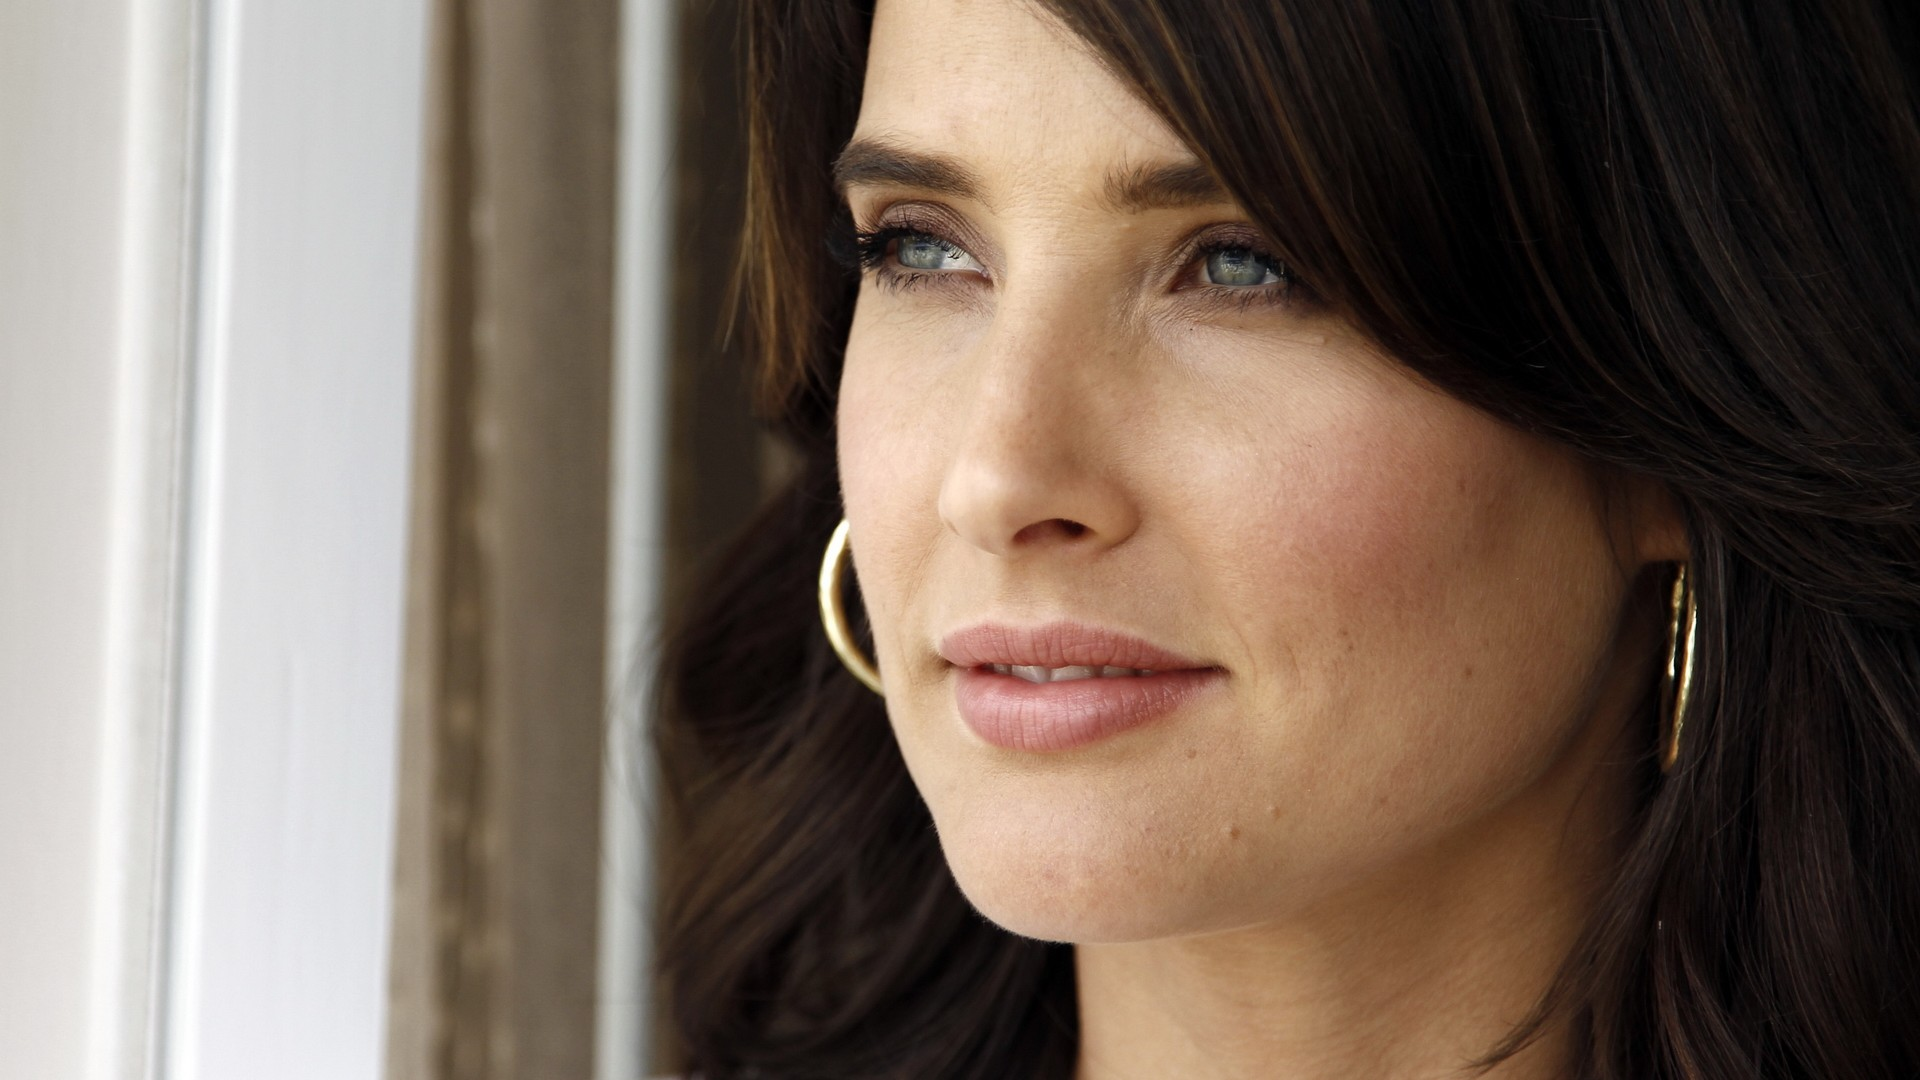 cobie smulders wallpapers - photo #21